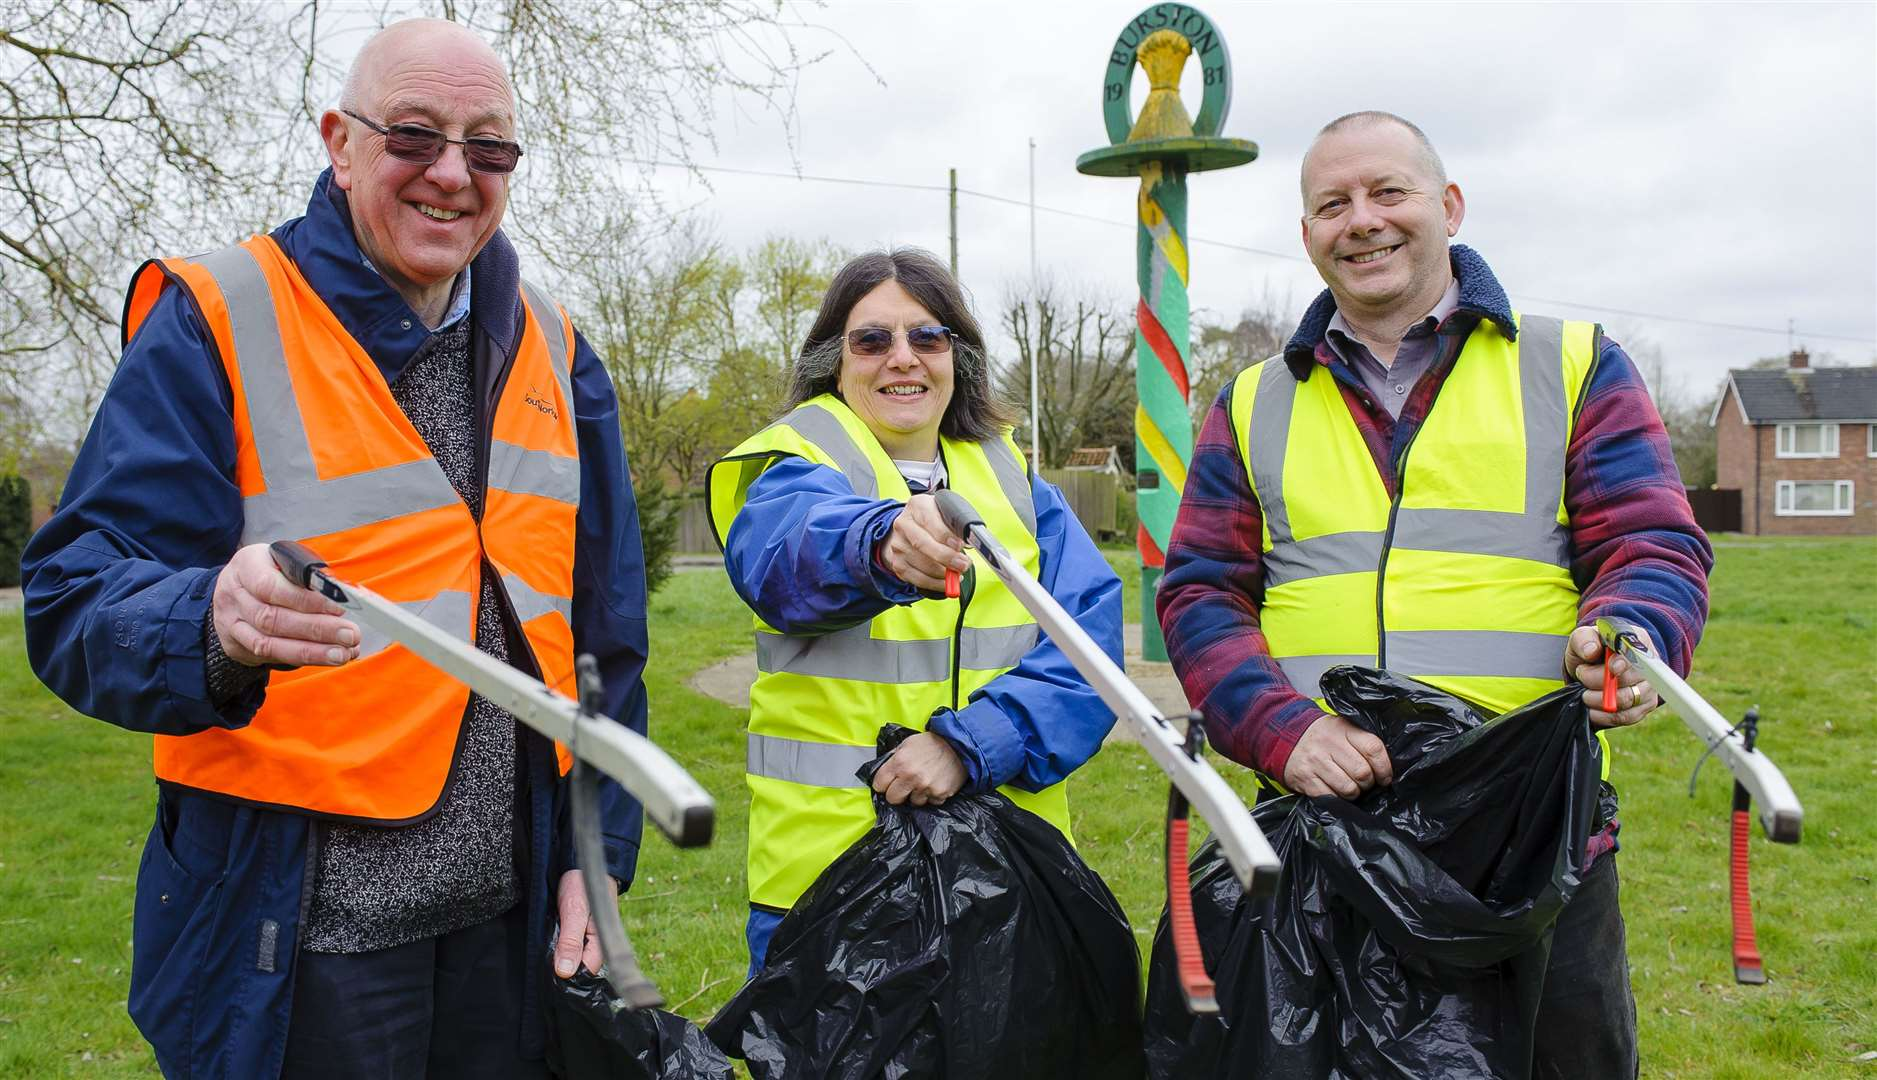 Nigel Frankland, Alison Wakeham and Jim Rudd were among the 20 people who took part in the litter pick. Pictures by Mark Bullimore.